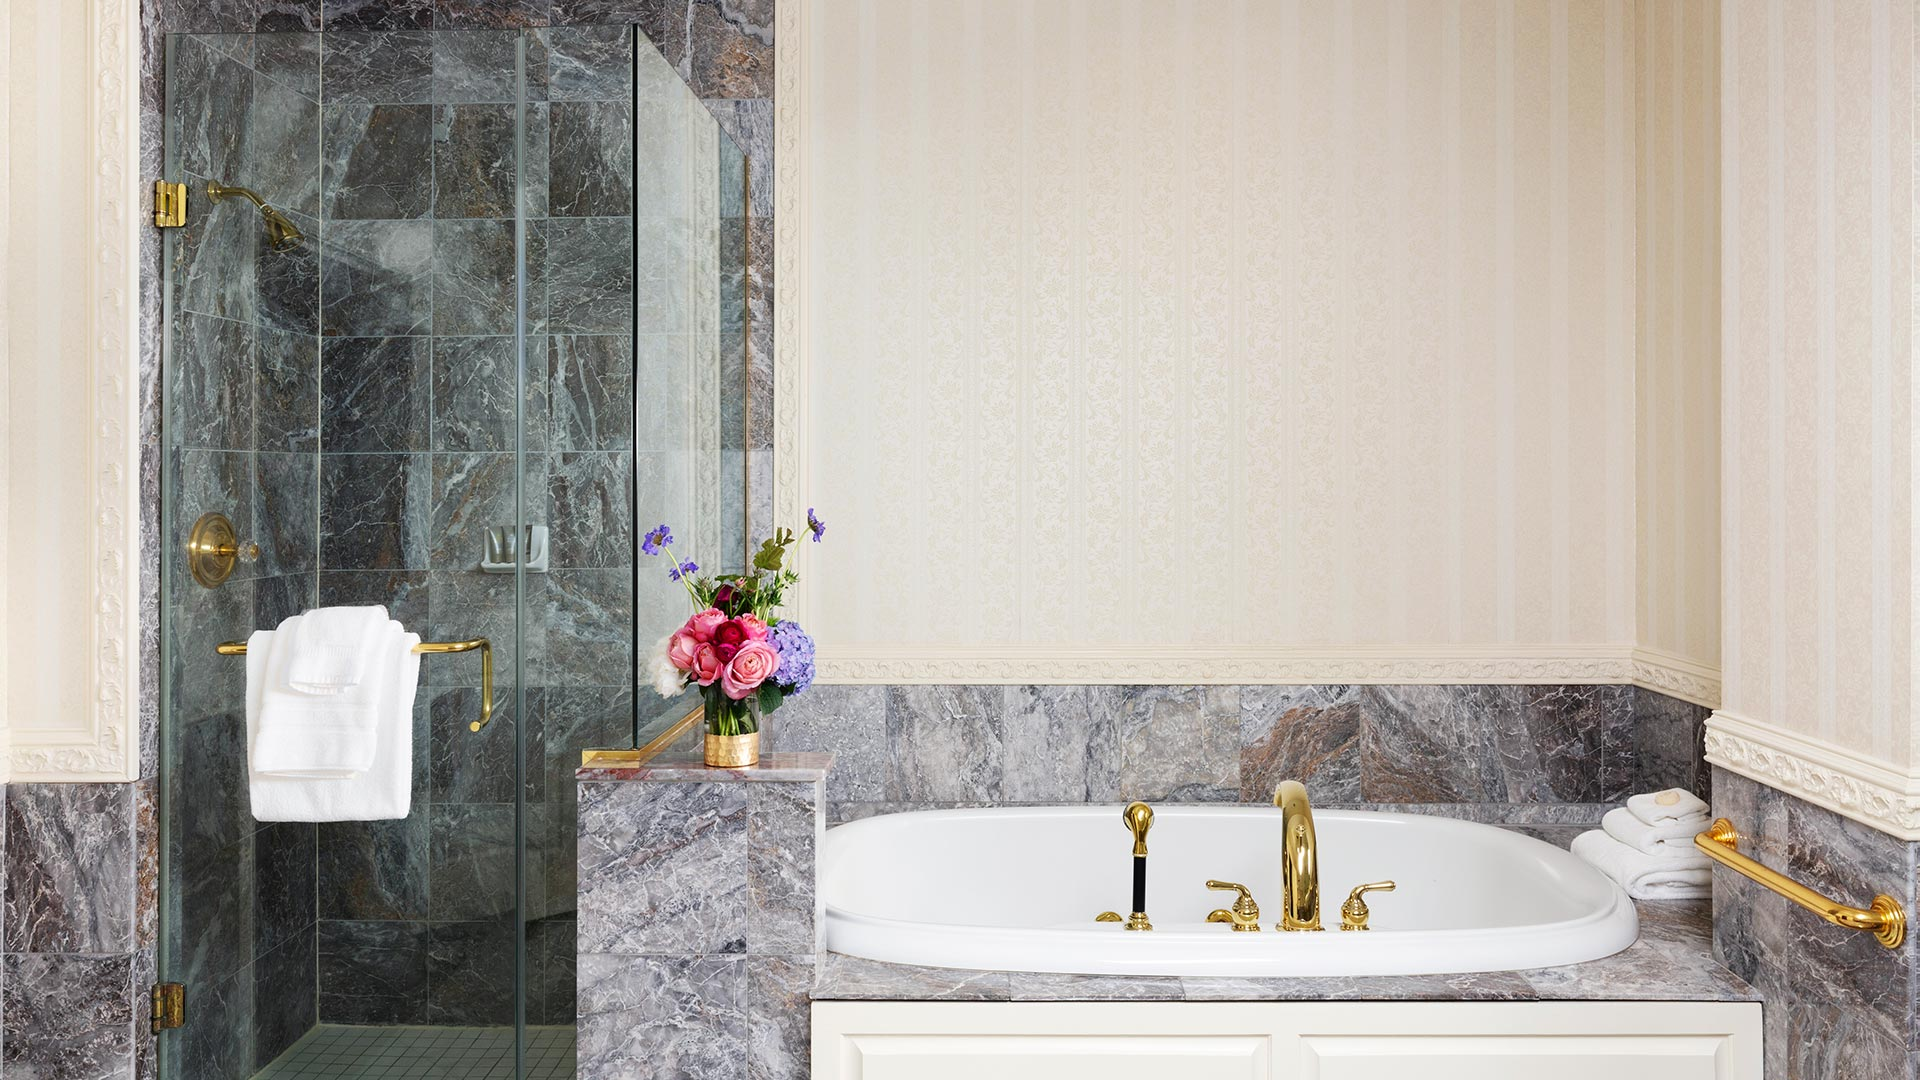 serene bathroom interior. neutral colored walls and tiles. There is a walk-in shower and whirlpool bathtub pictured